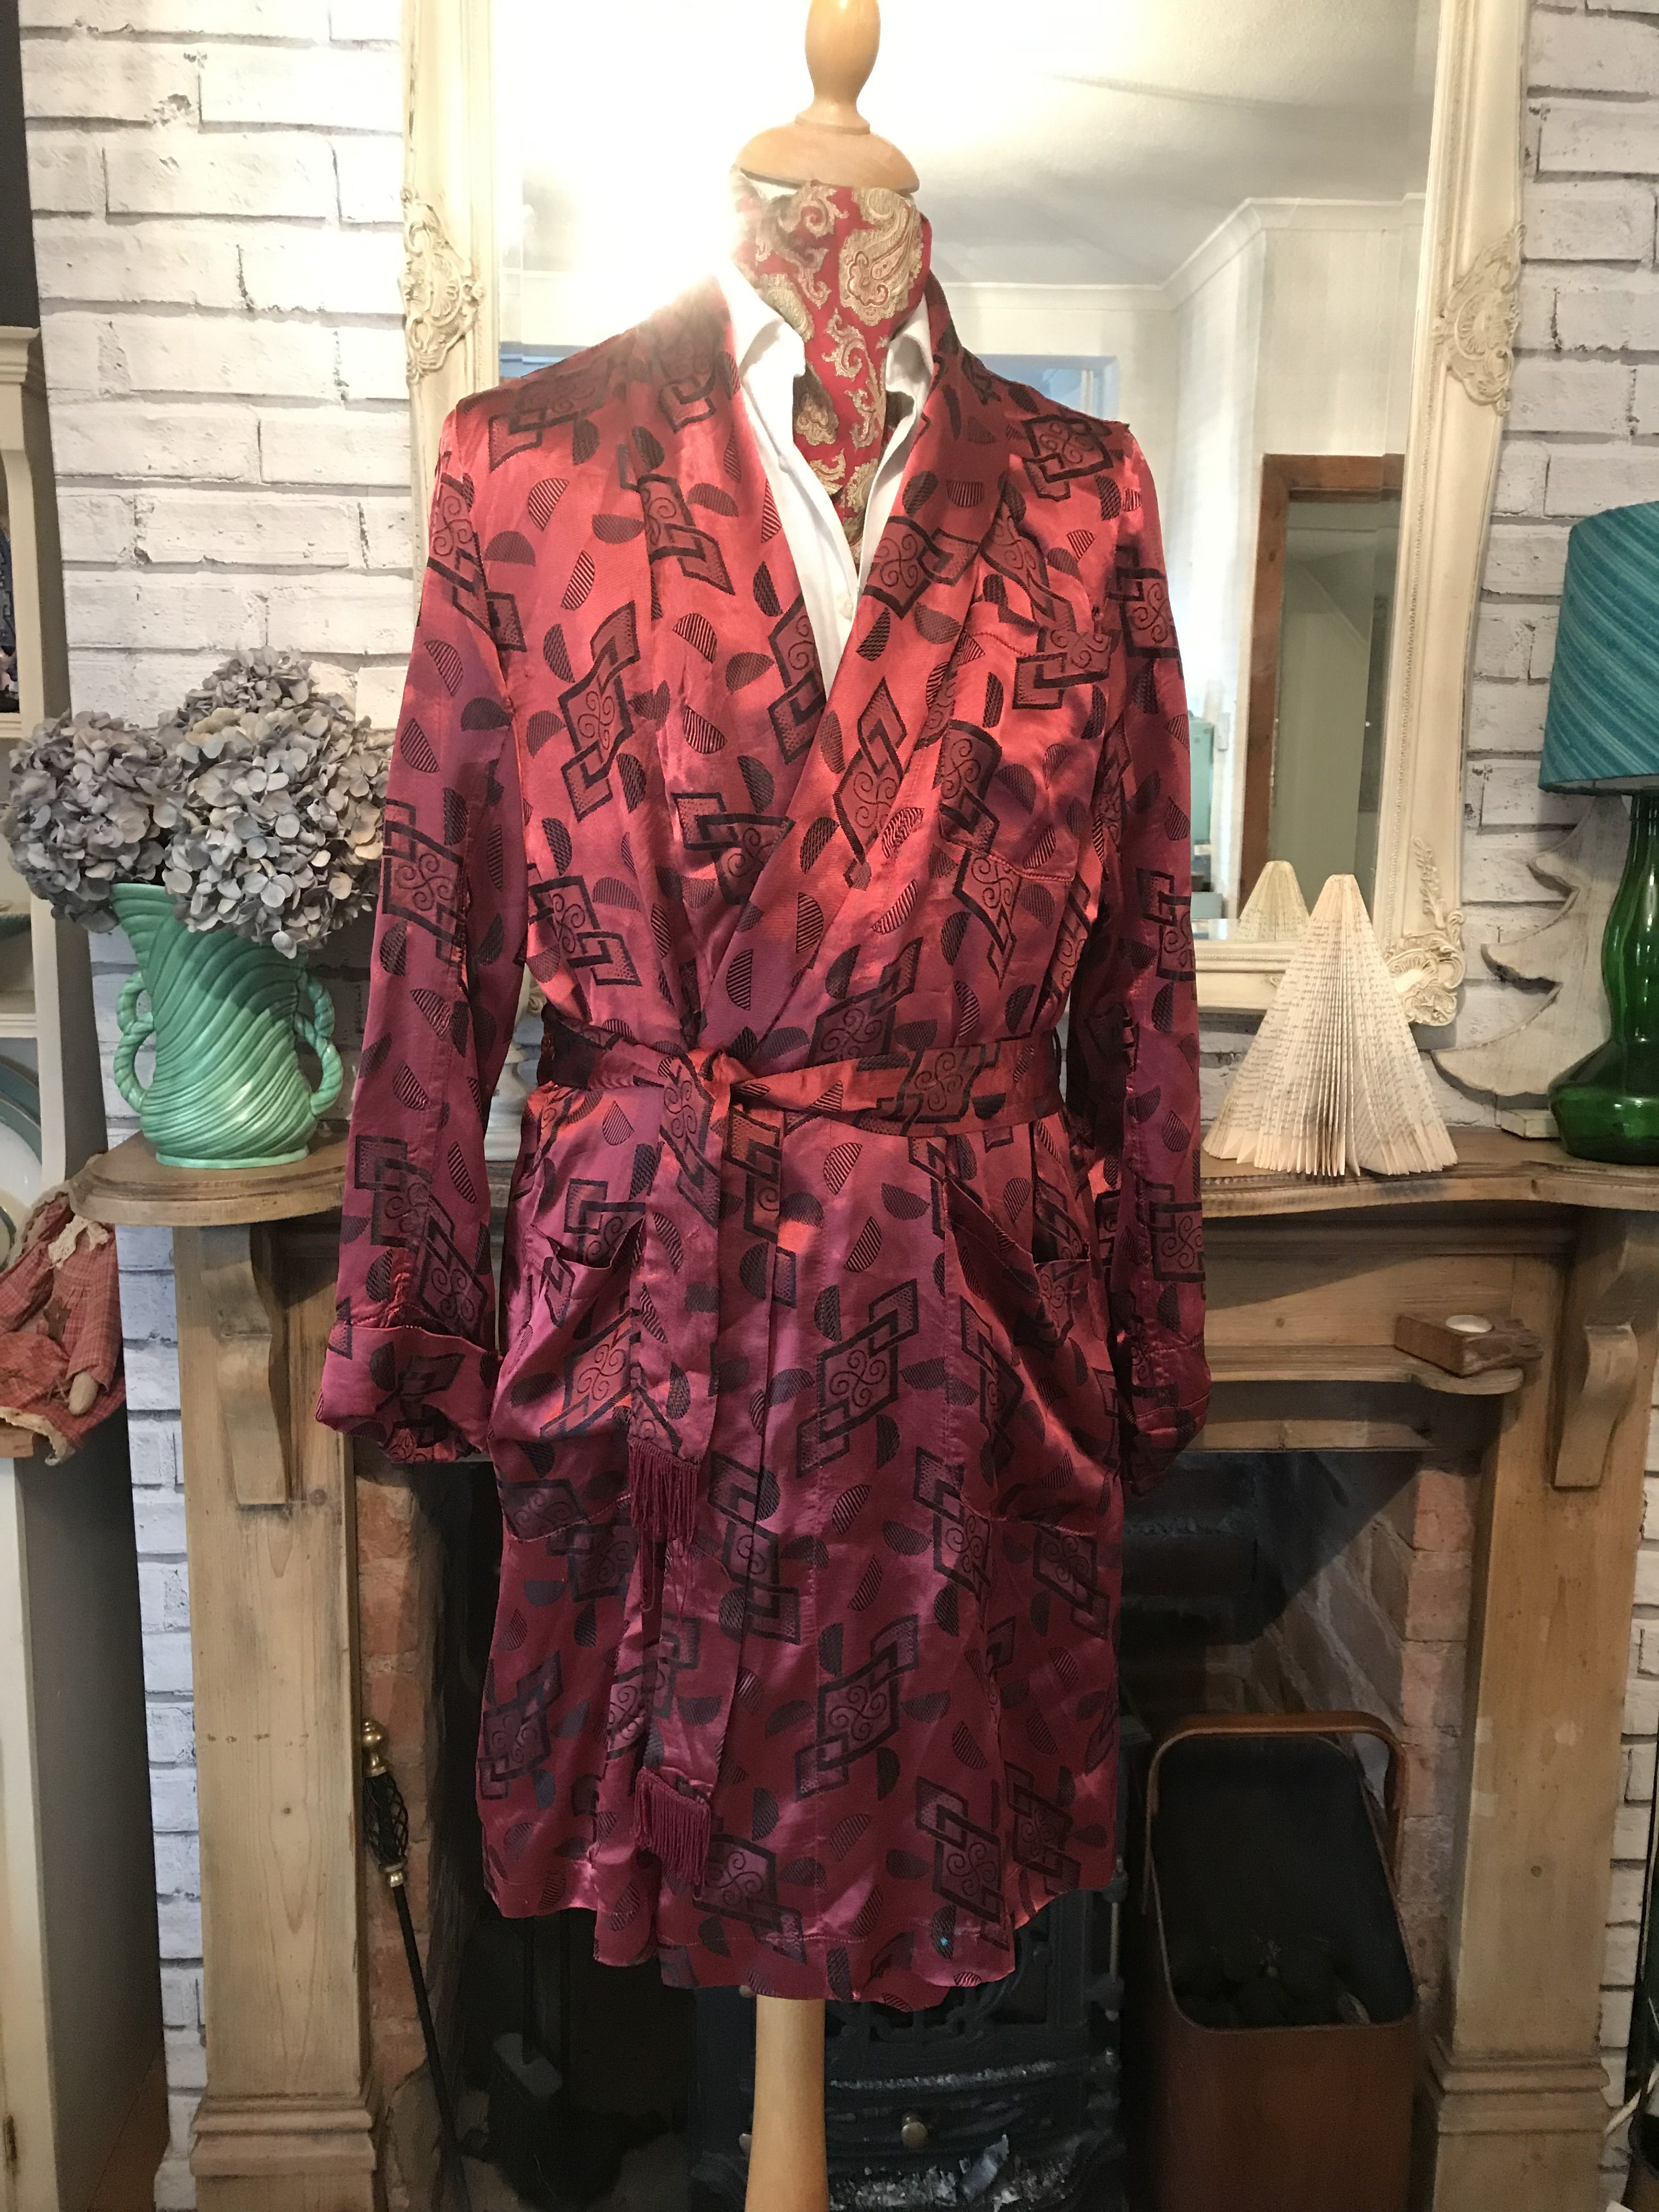 Pin On Smoking Jackets Gowns